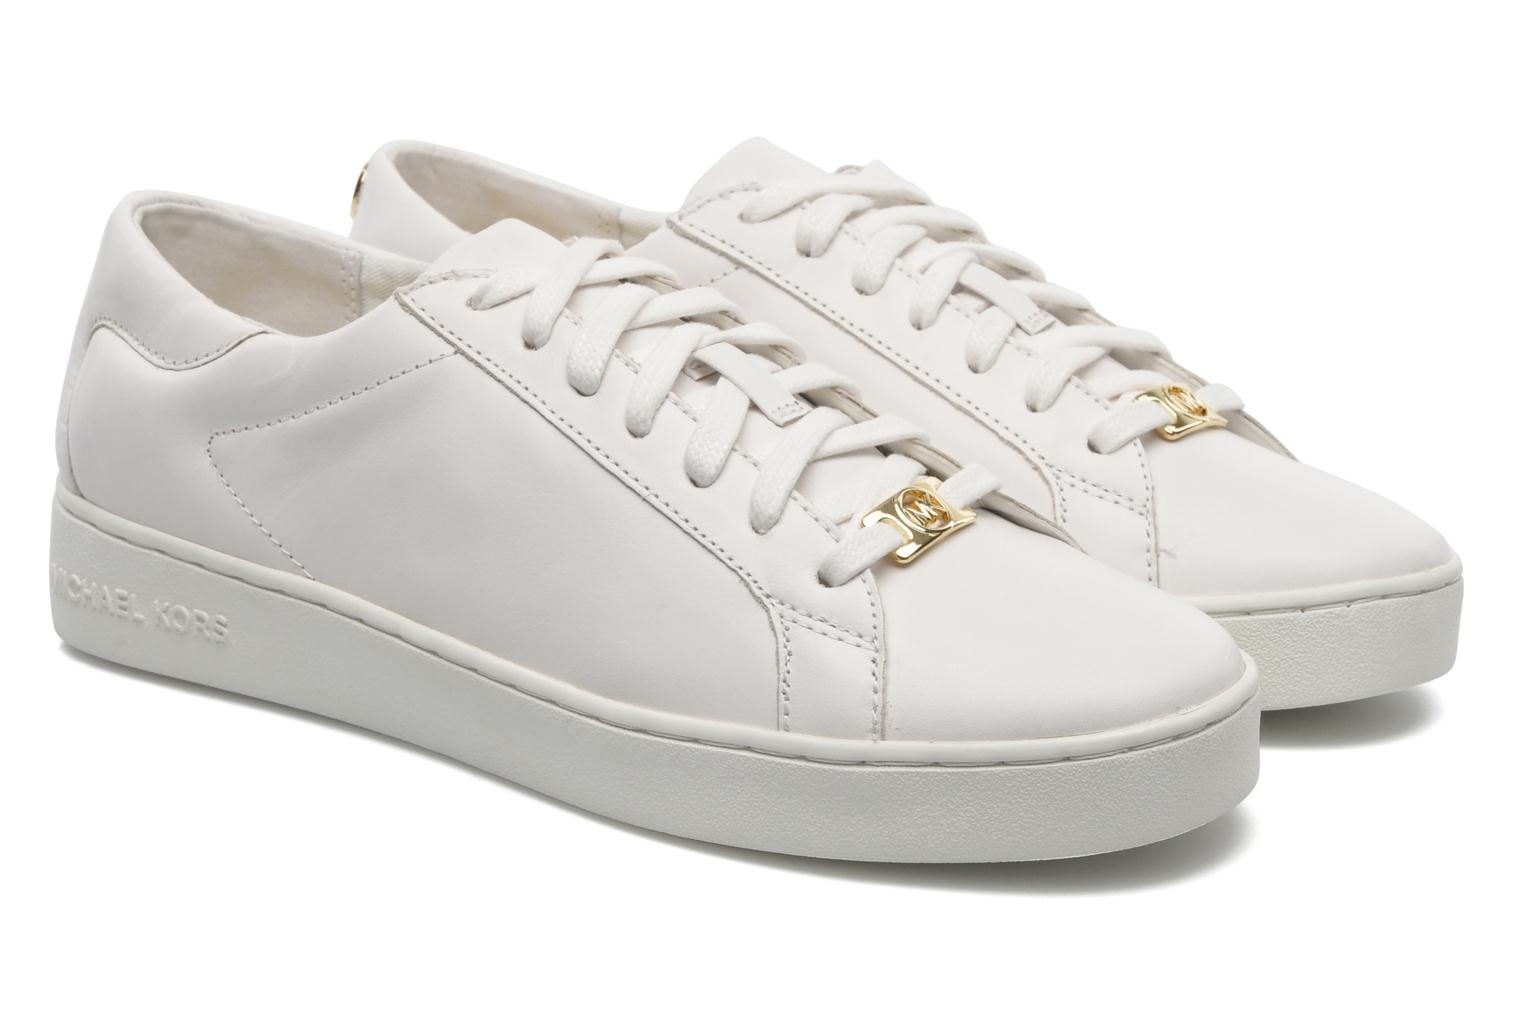 Michael Michael Kors Keaton Sneaker Trainers in White at ...